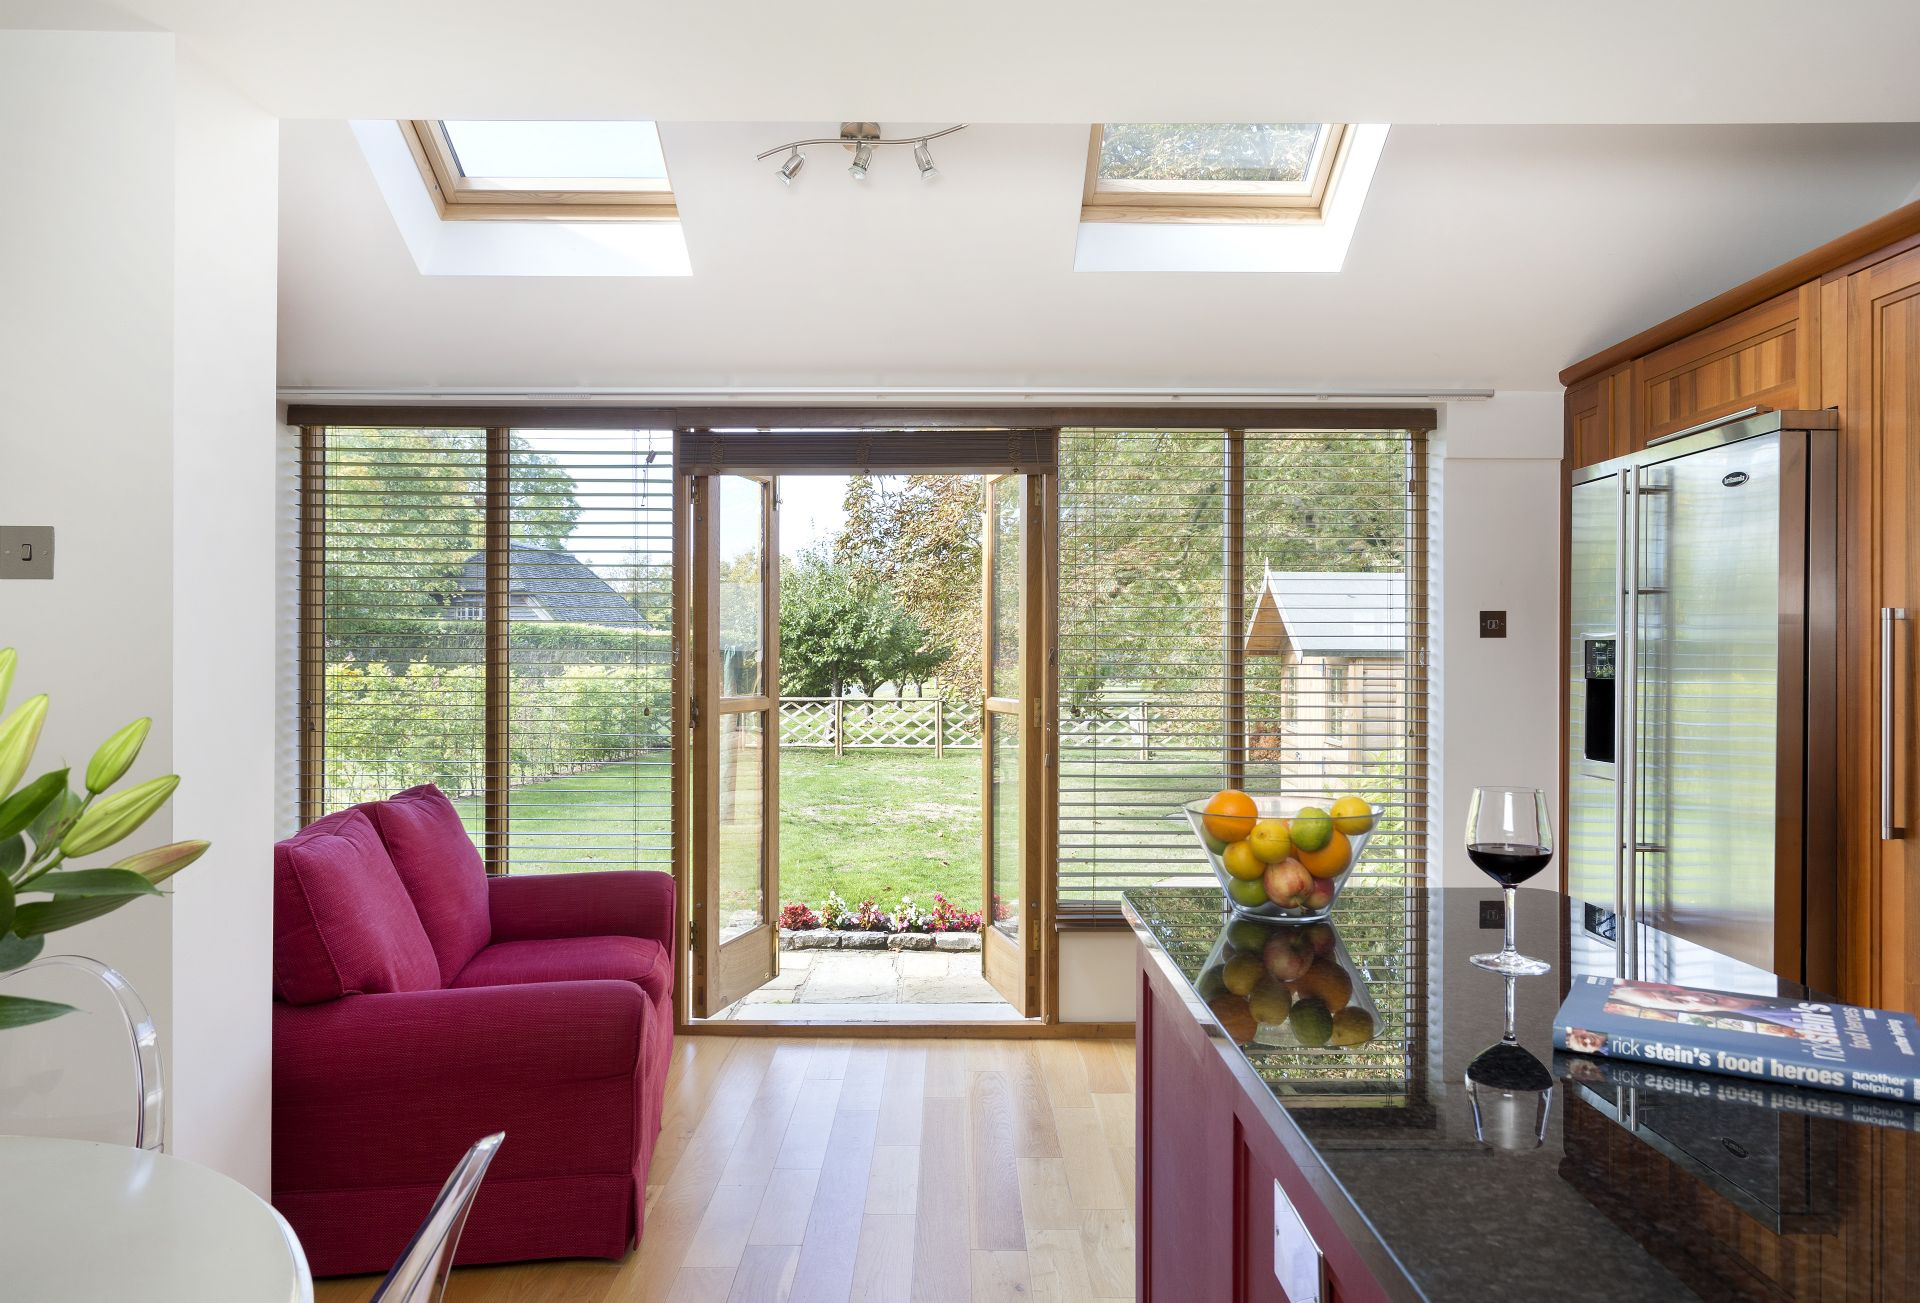 Ground floor: French doors lead out to the garden